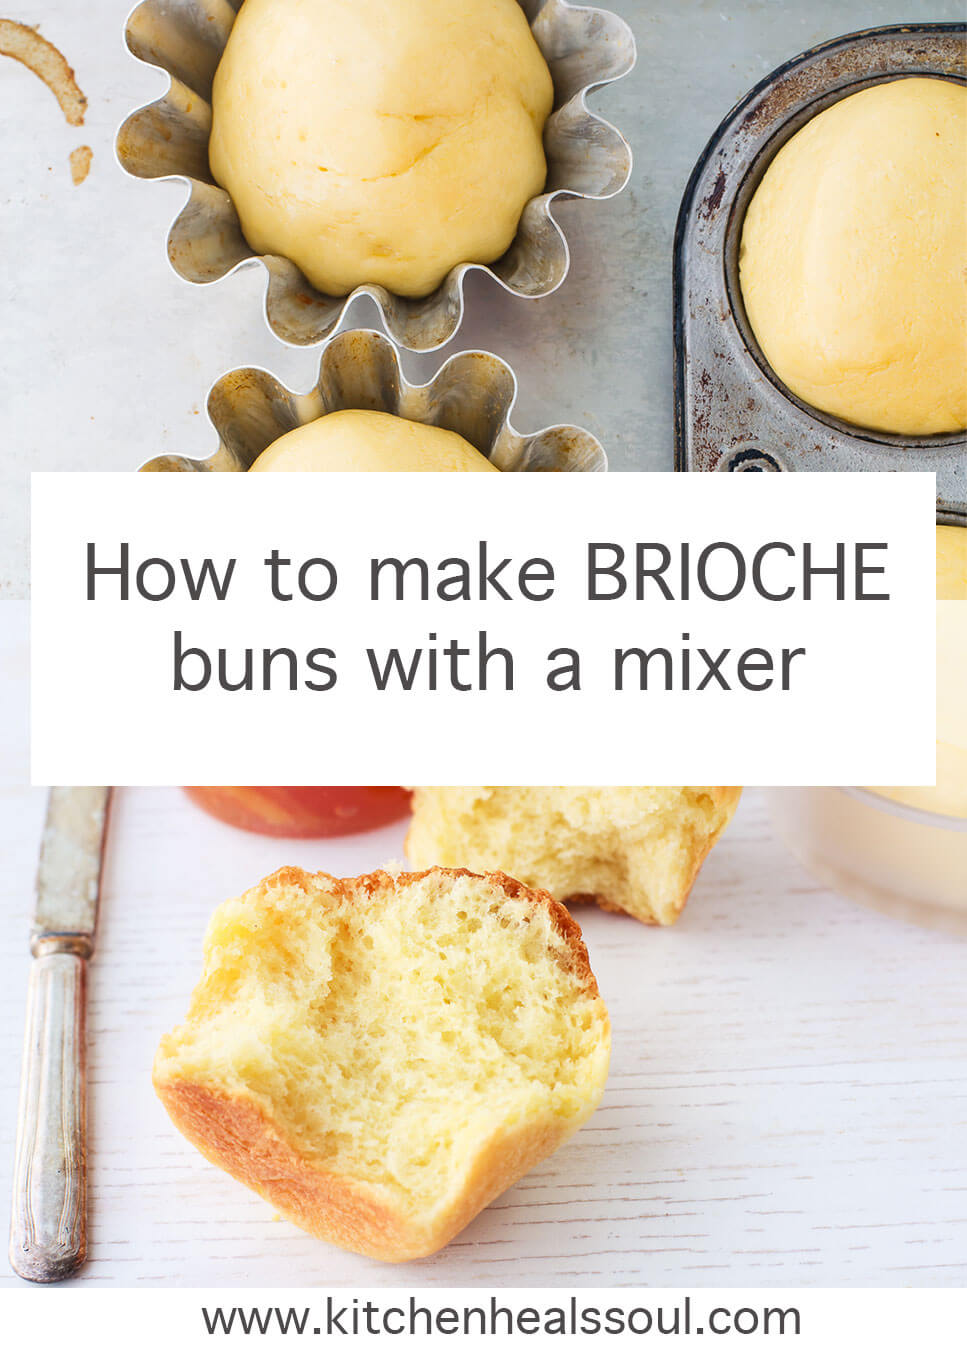 brioche buns before and after baking, made with a stand mixer, and served with marmalade and butter